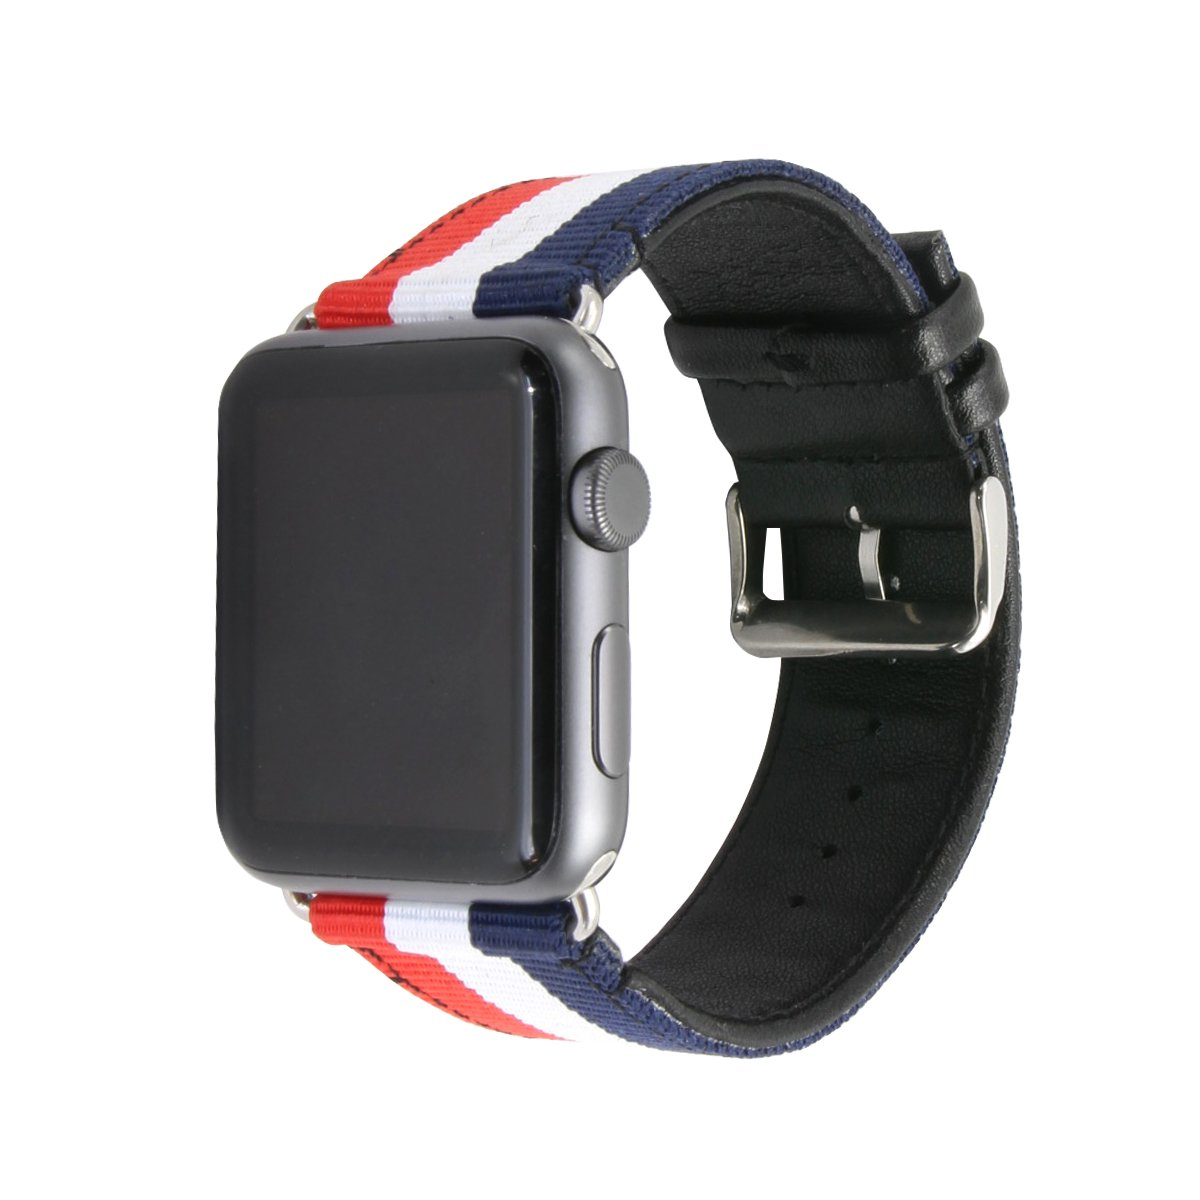 Amazon.com: Zeit Diktator Watch Band for Apple Watch ...